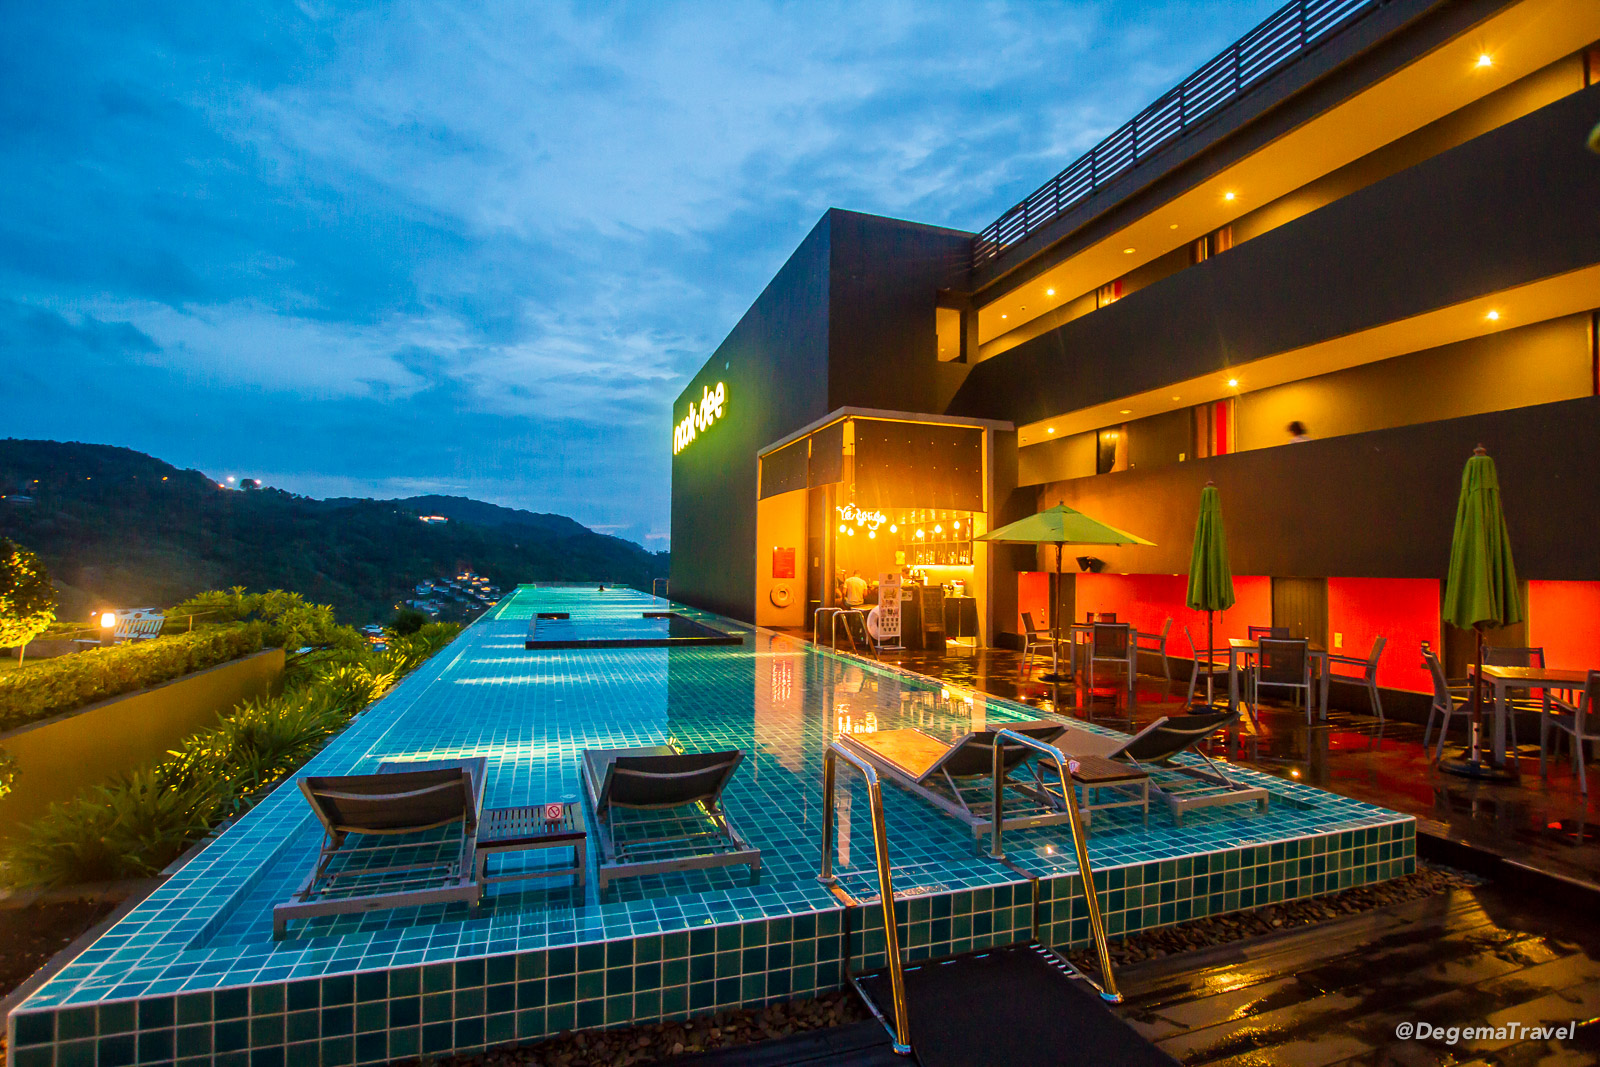 Swimming pool at Nook-Dee Boutique Resort in Phuket, Thailand